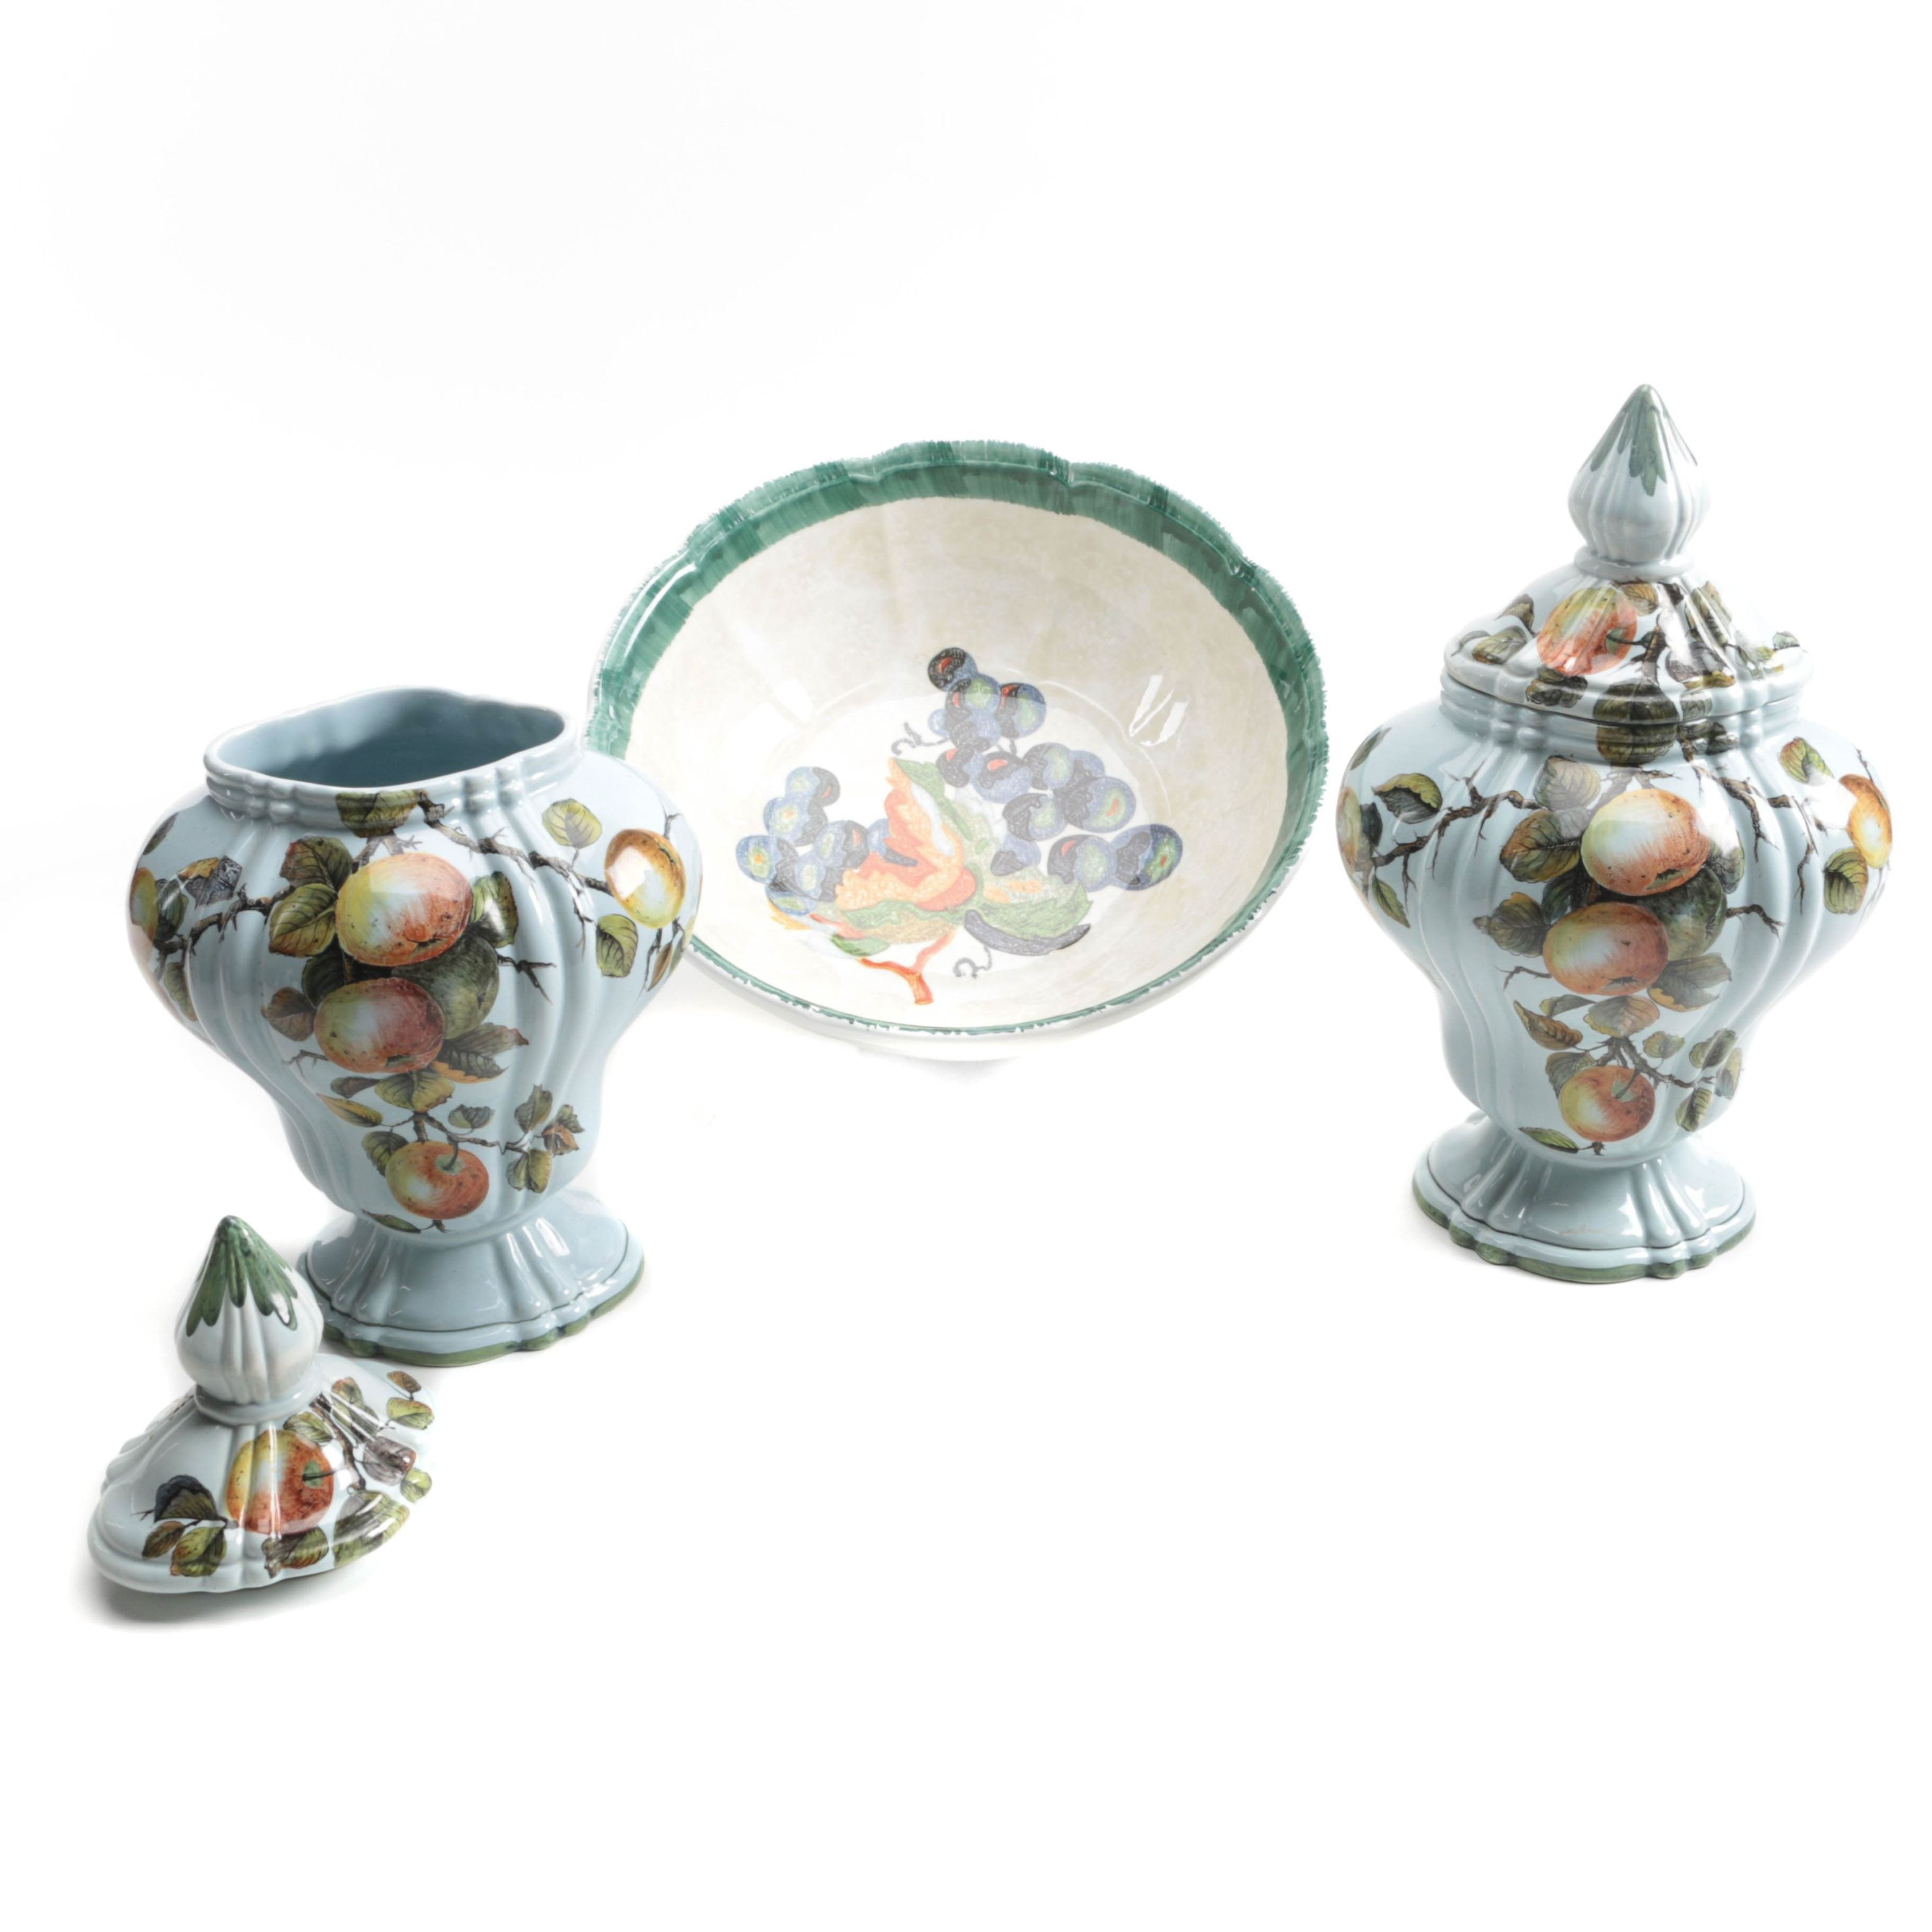 Decorative Hand-Painted Italian Ceramic Bowl and Lidded Urns